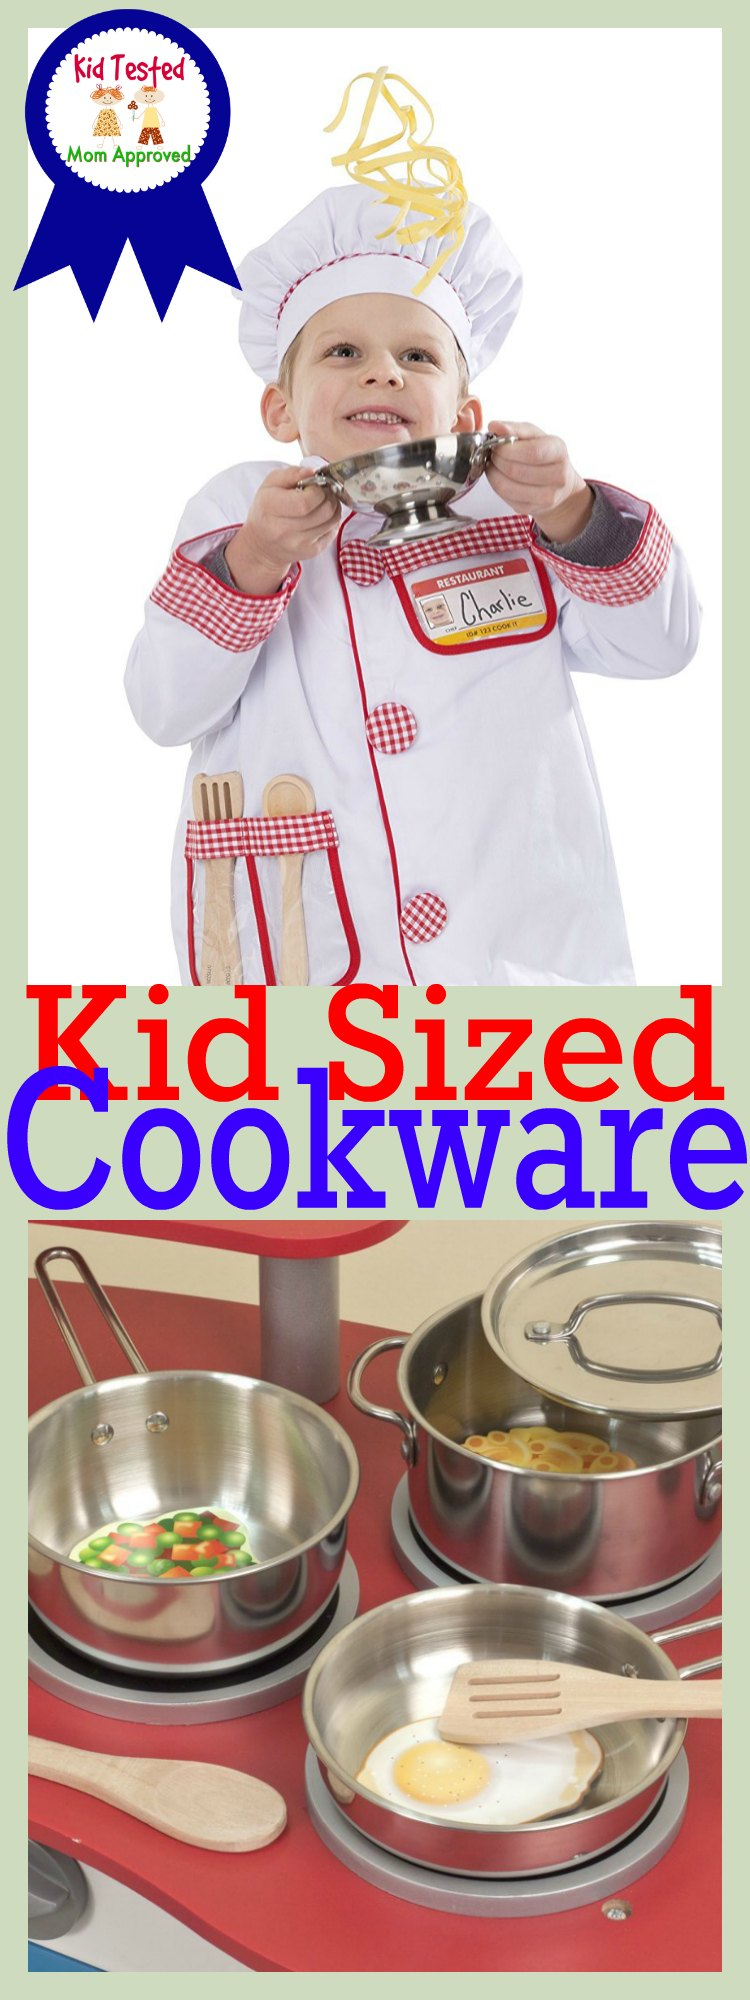 Kid Sized Cookware